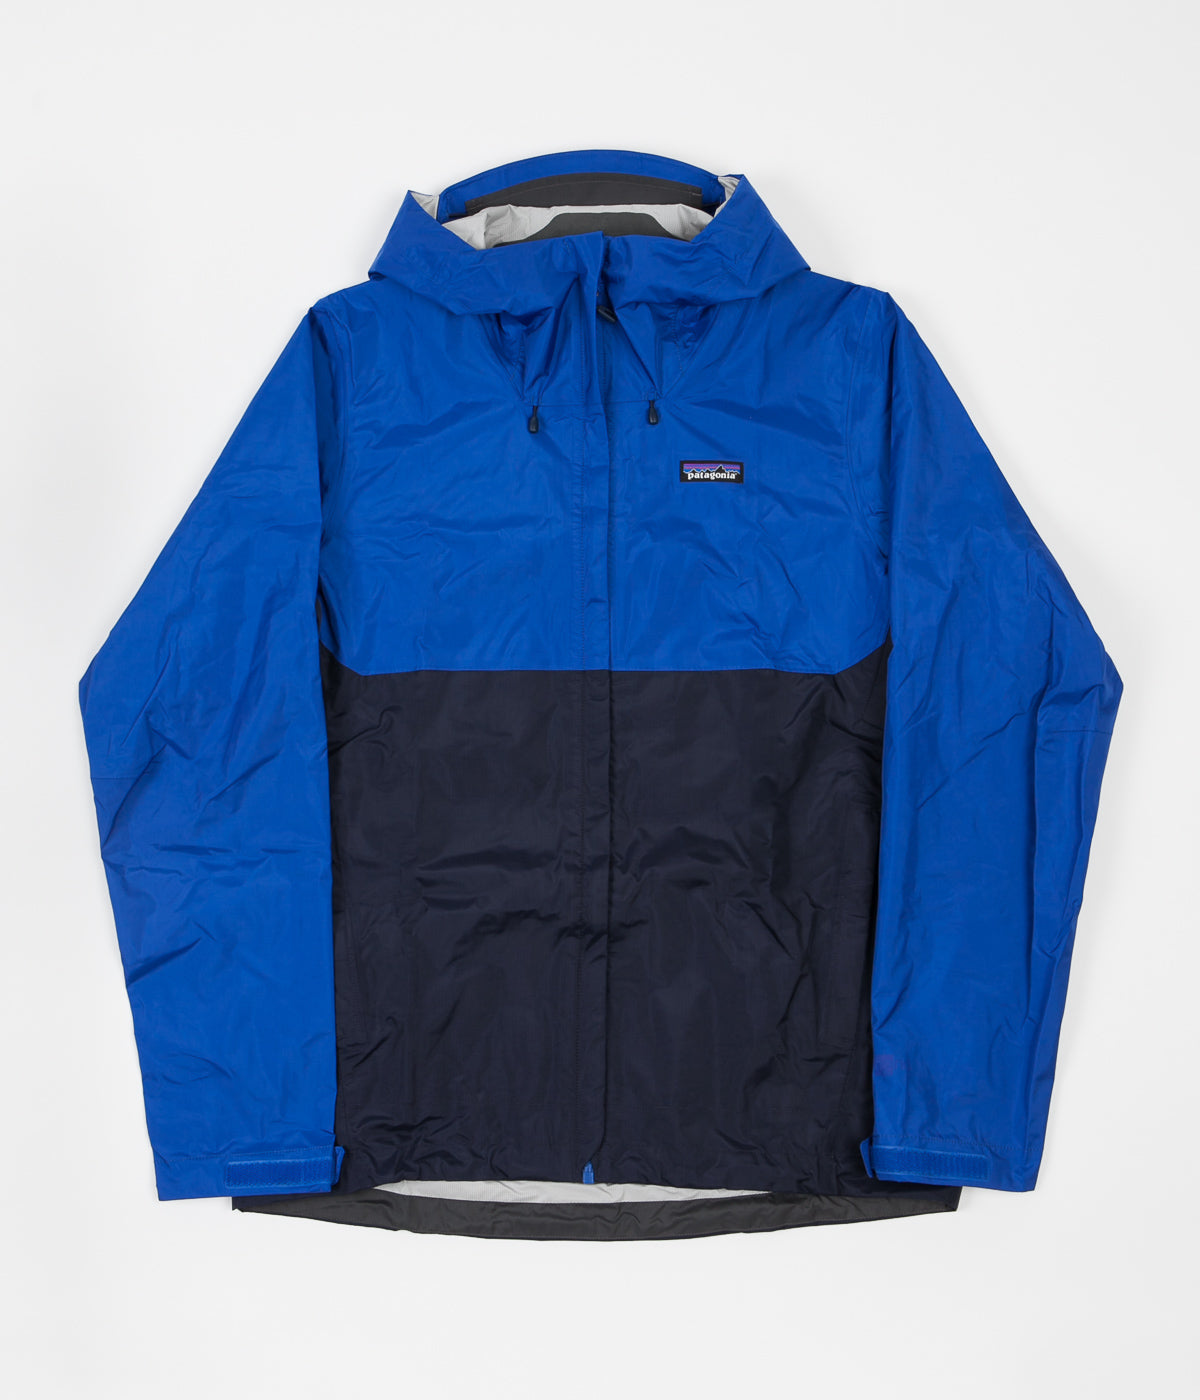 Patagonia Torrentshell Jacket - Viking Blue / Navy Blue